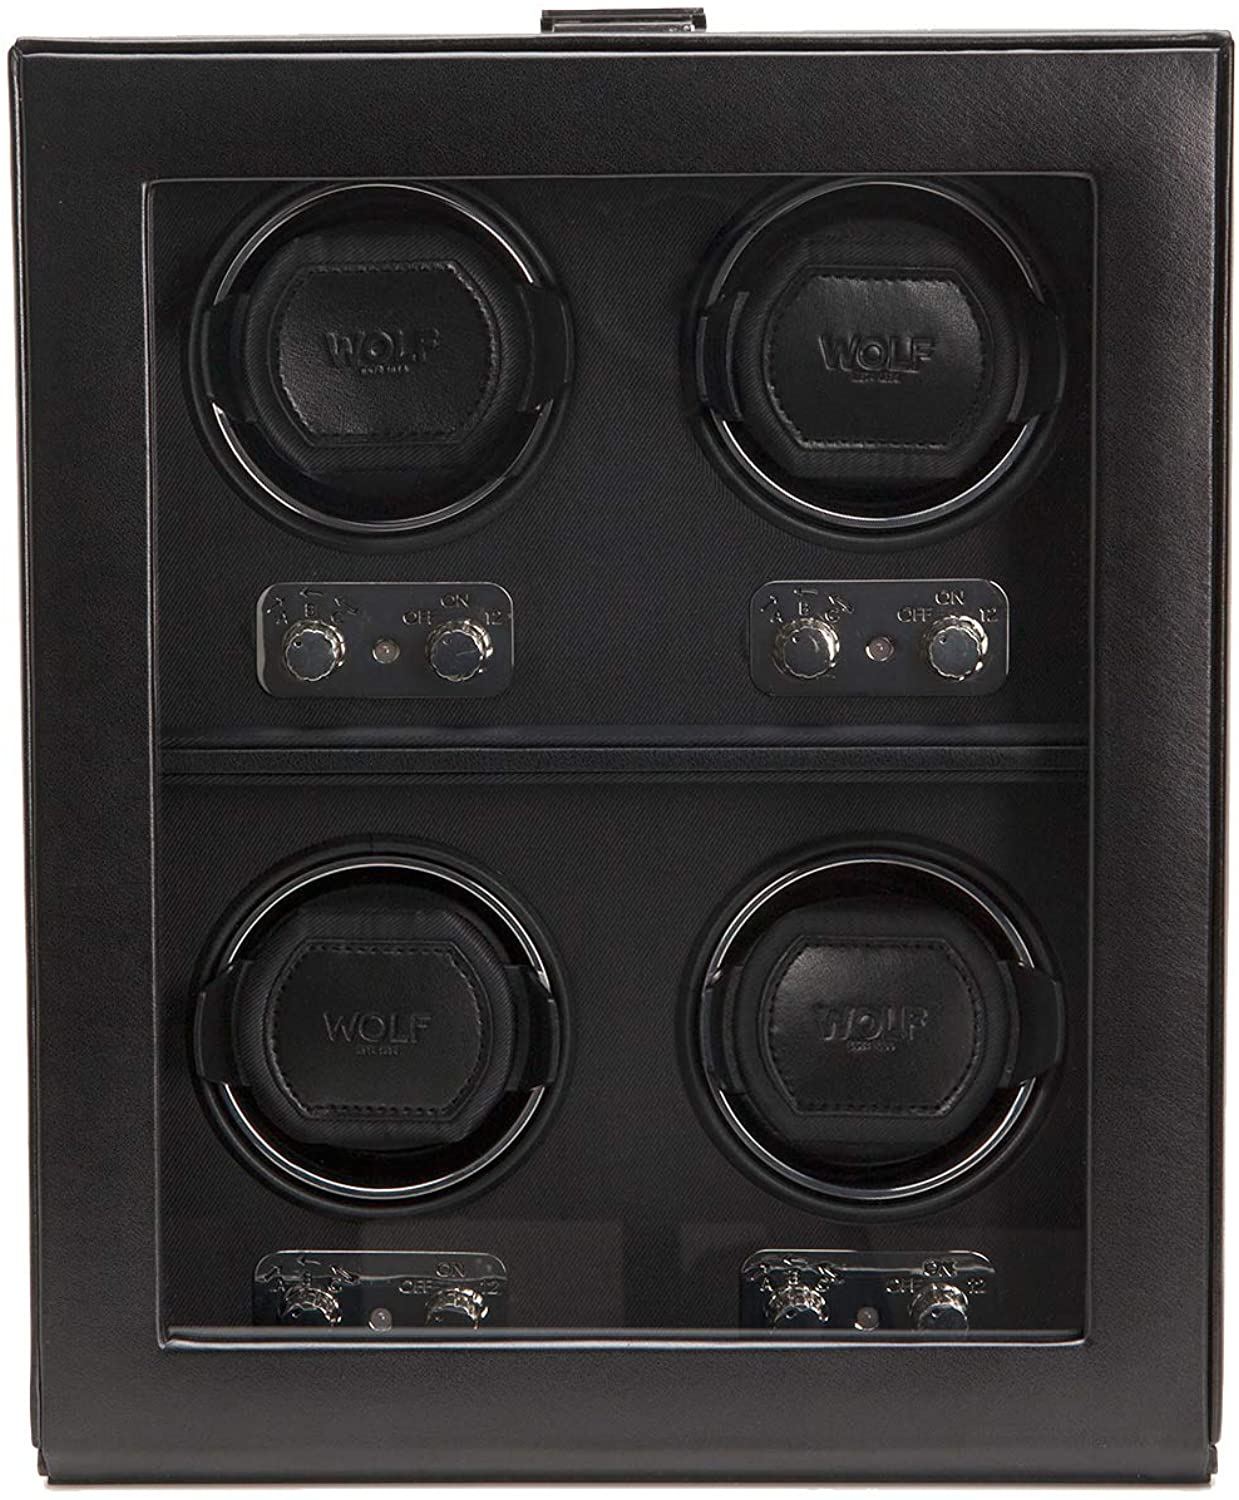 WOLF 270602 Heritage 4 Piece Watch Winder with Cover, Black